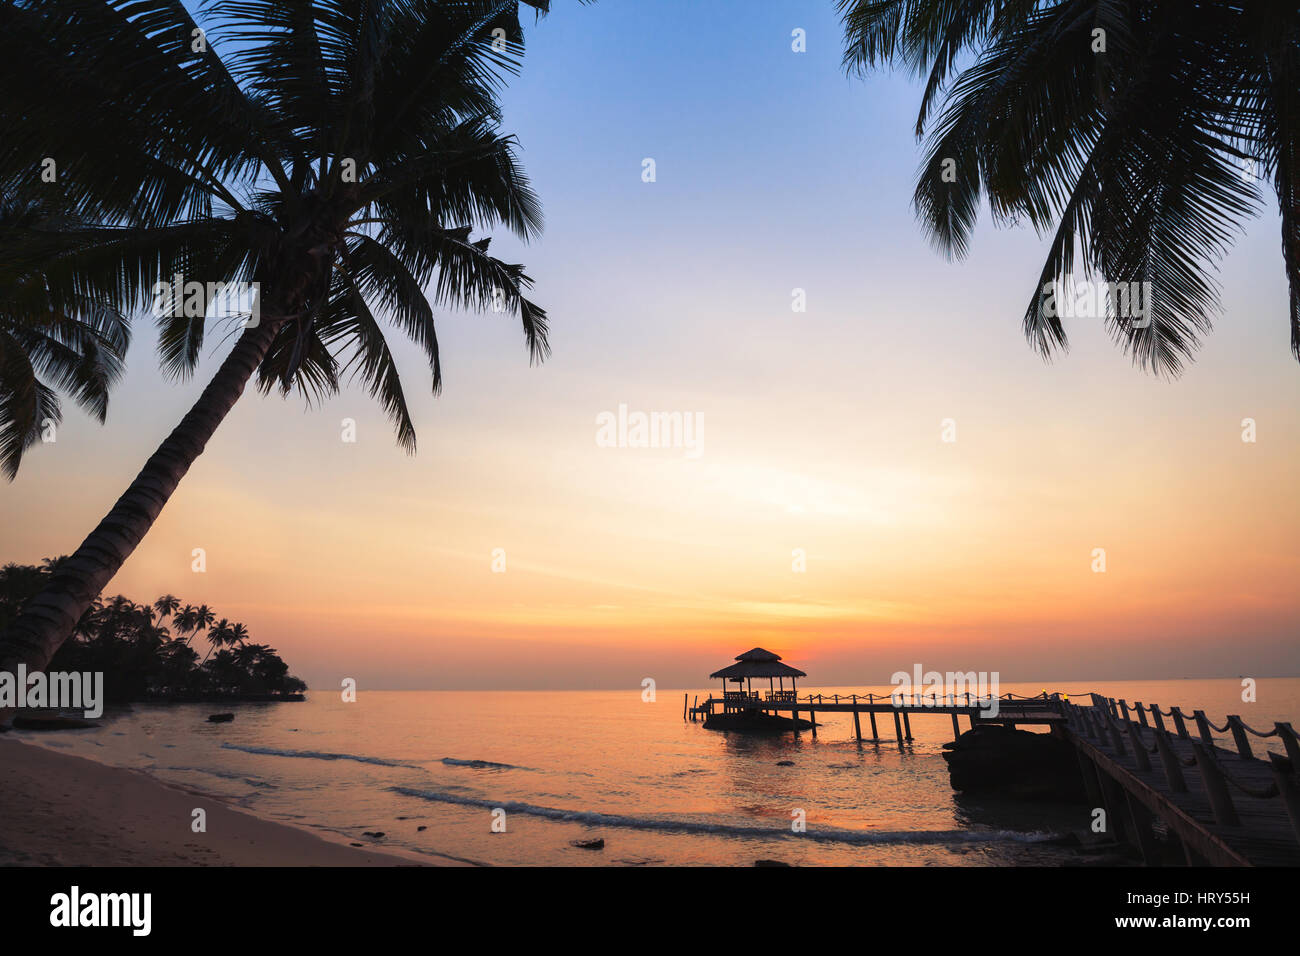 Tropical Beach Background Beautiful Sunset Landscape With Silhouettes Of Palm Trees Vacation